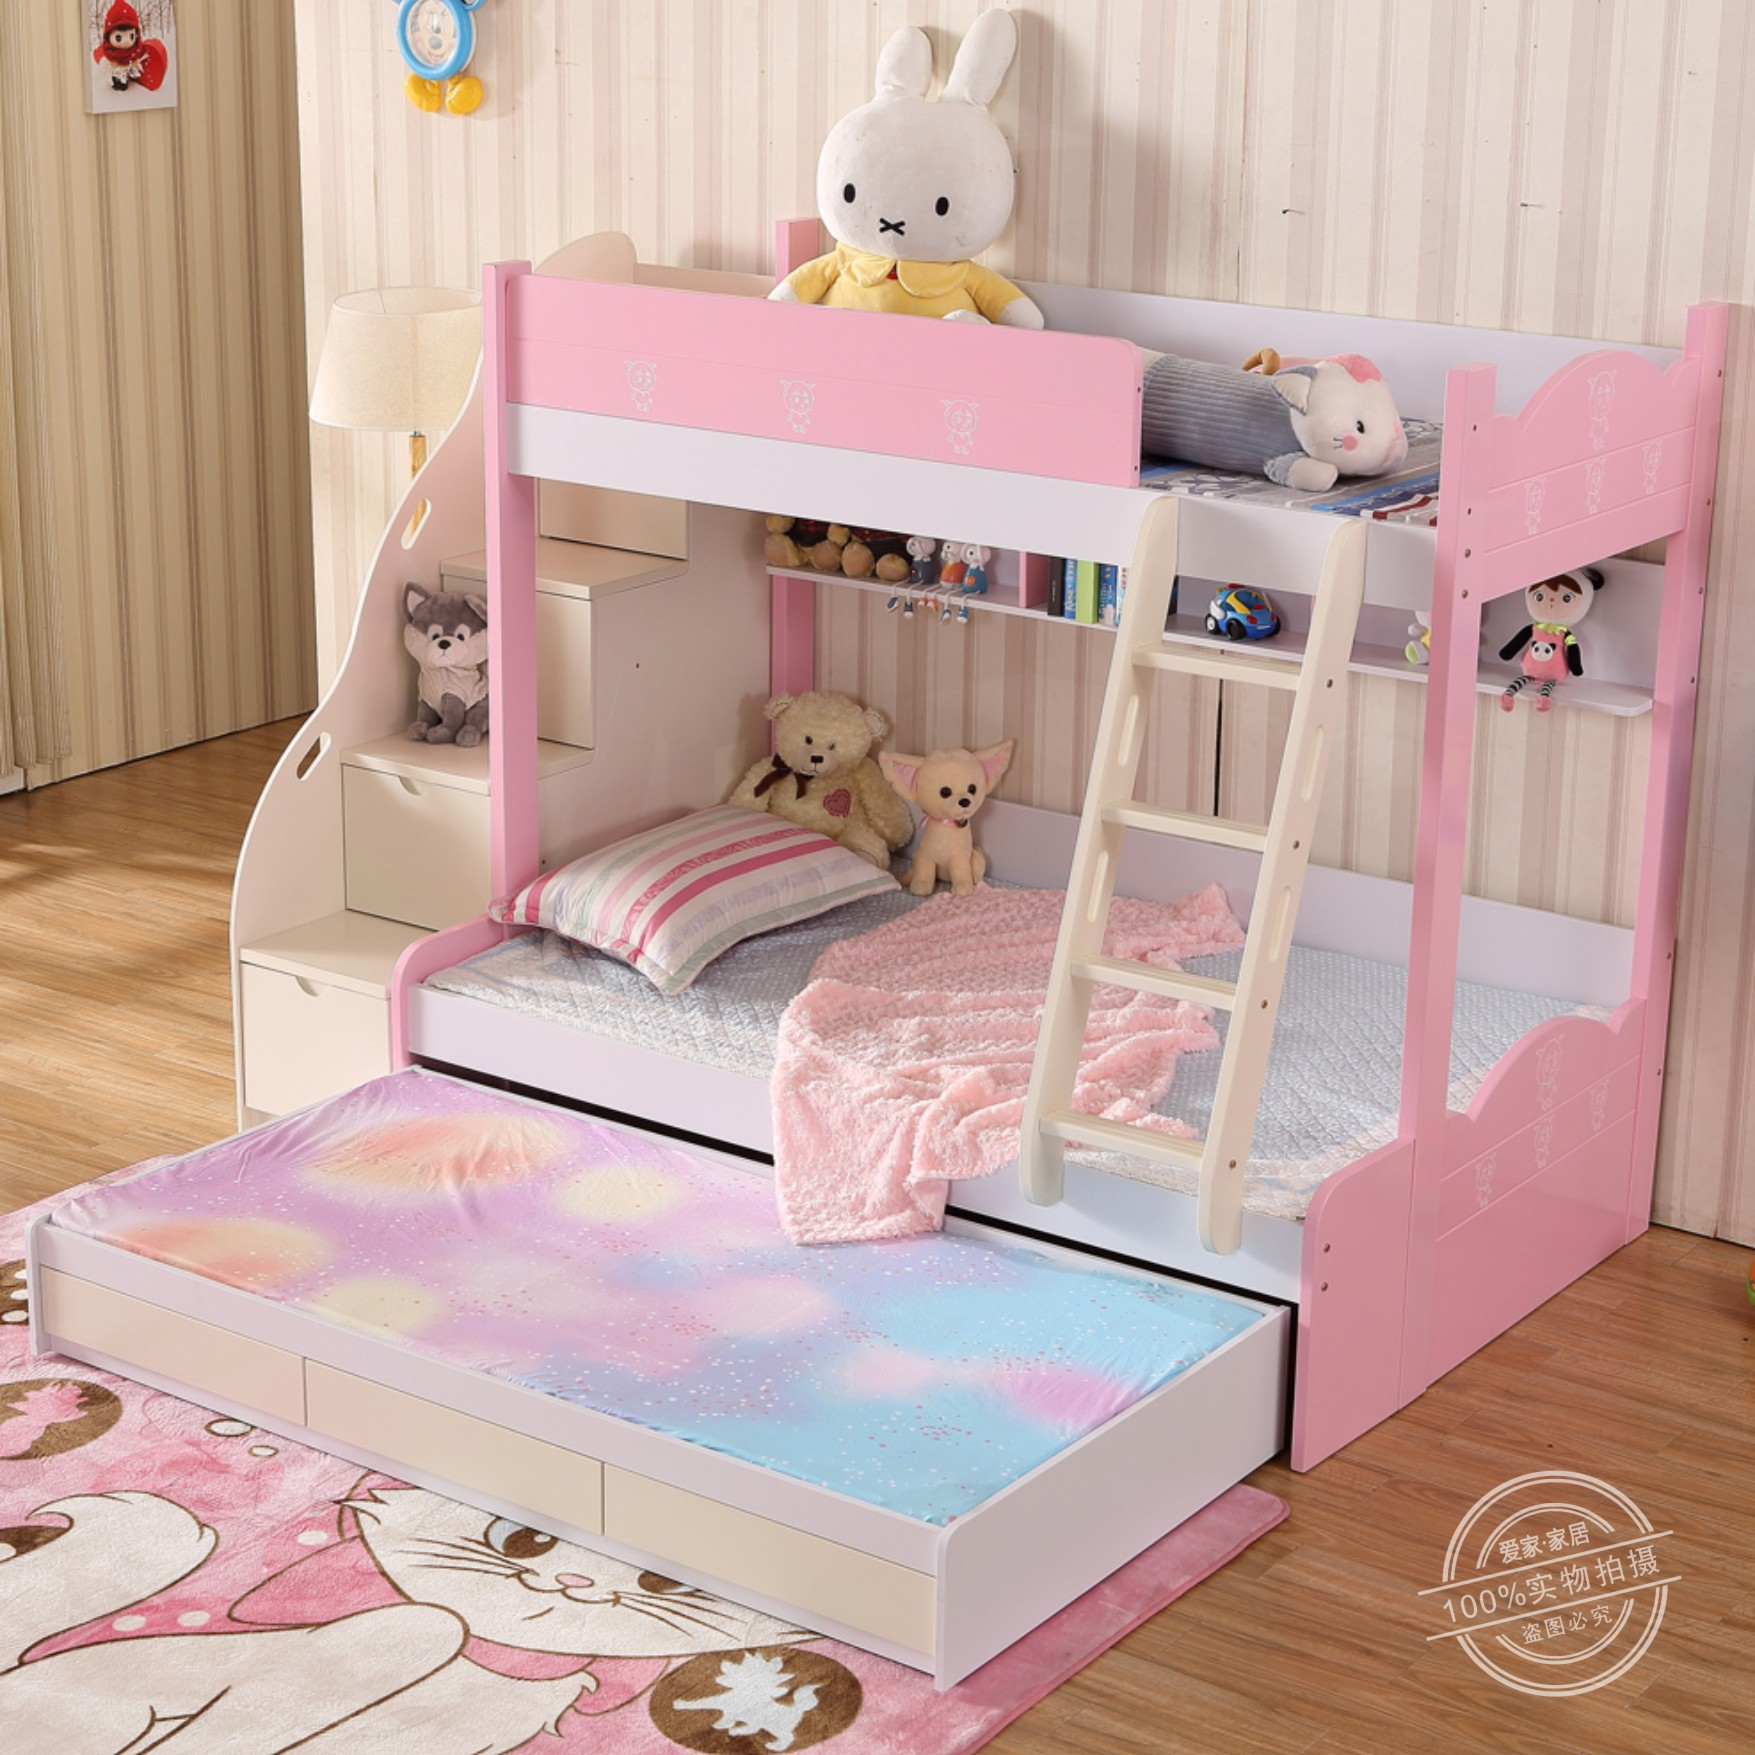 Usd 183 88 Children Bed Girl Korean Princess On And Off Bed Bed